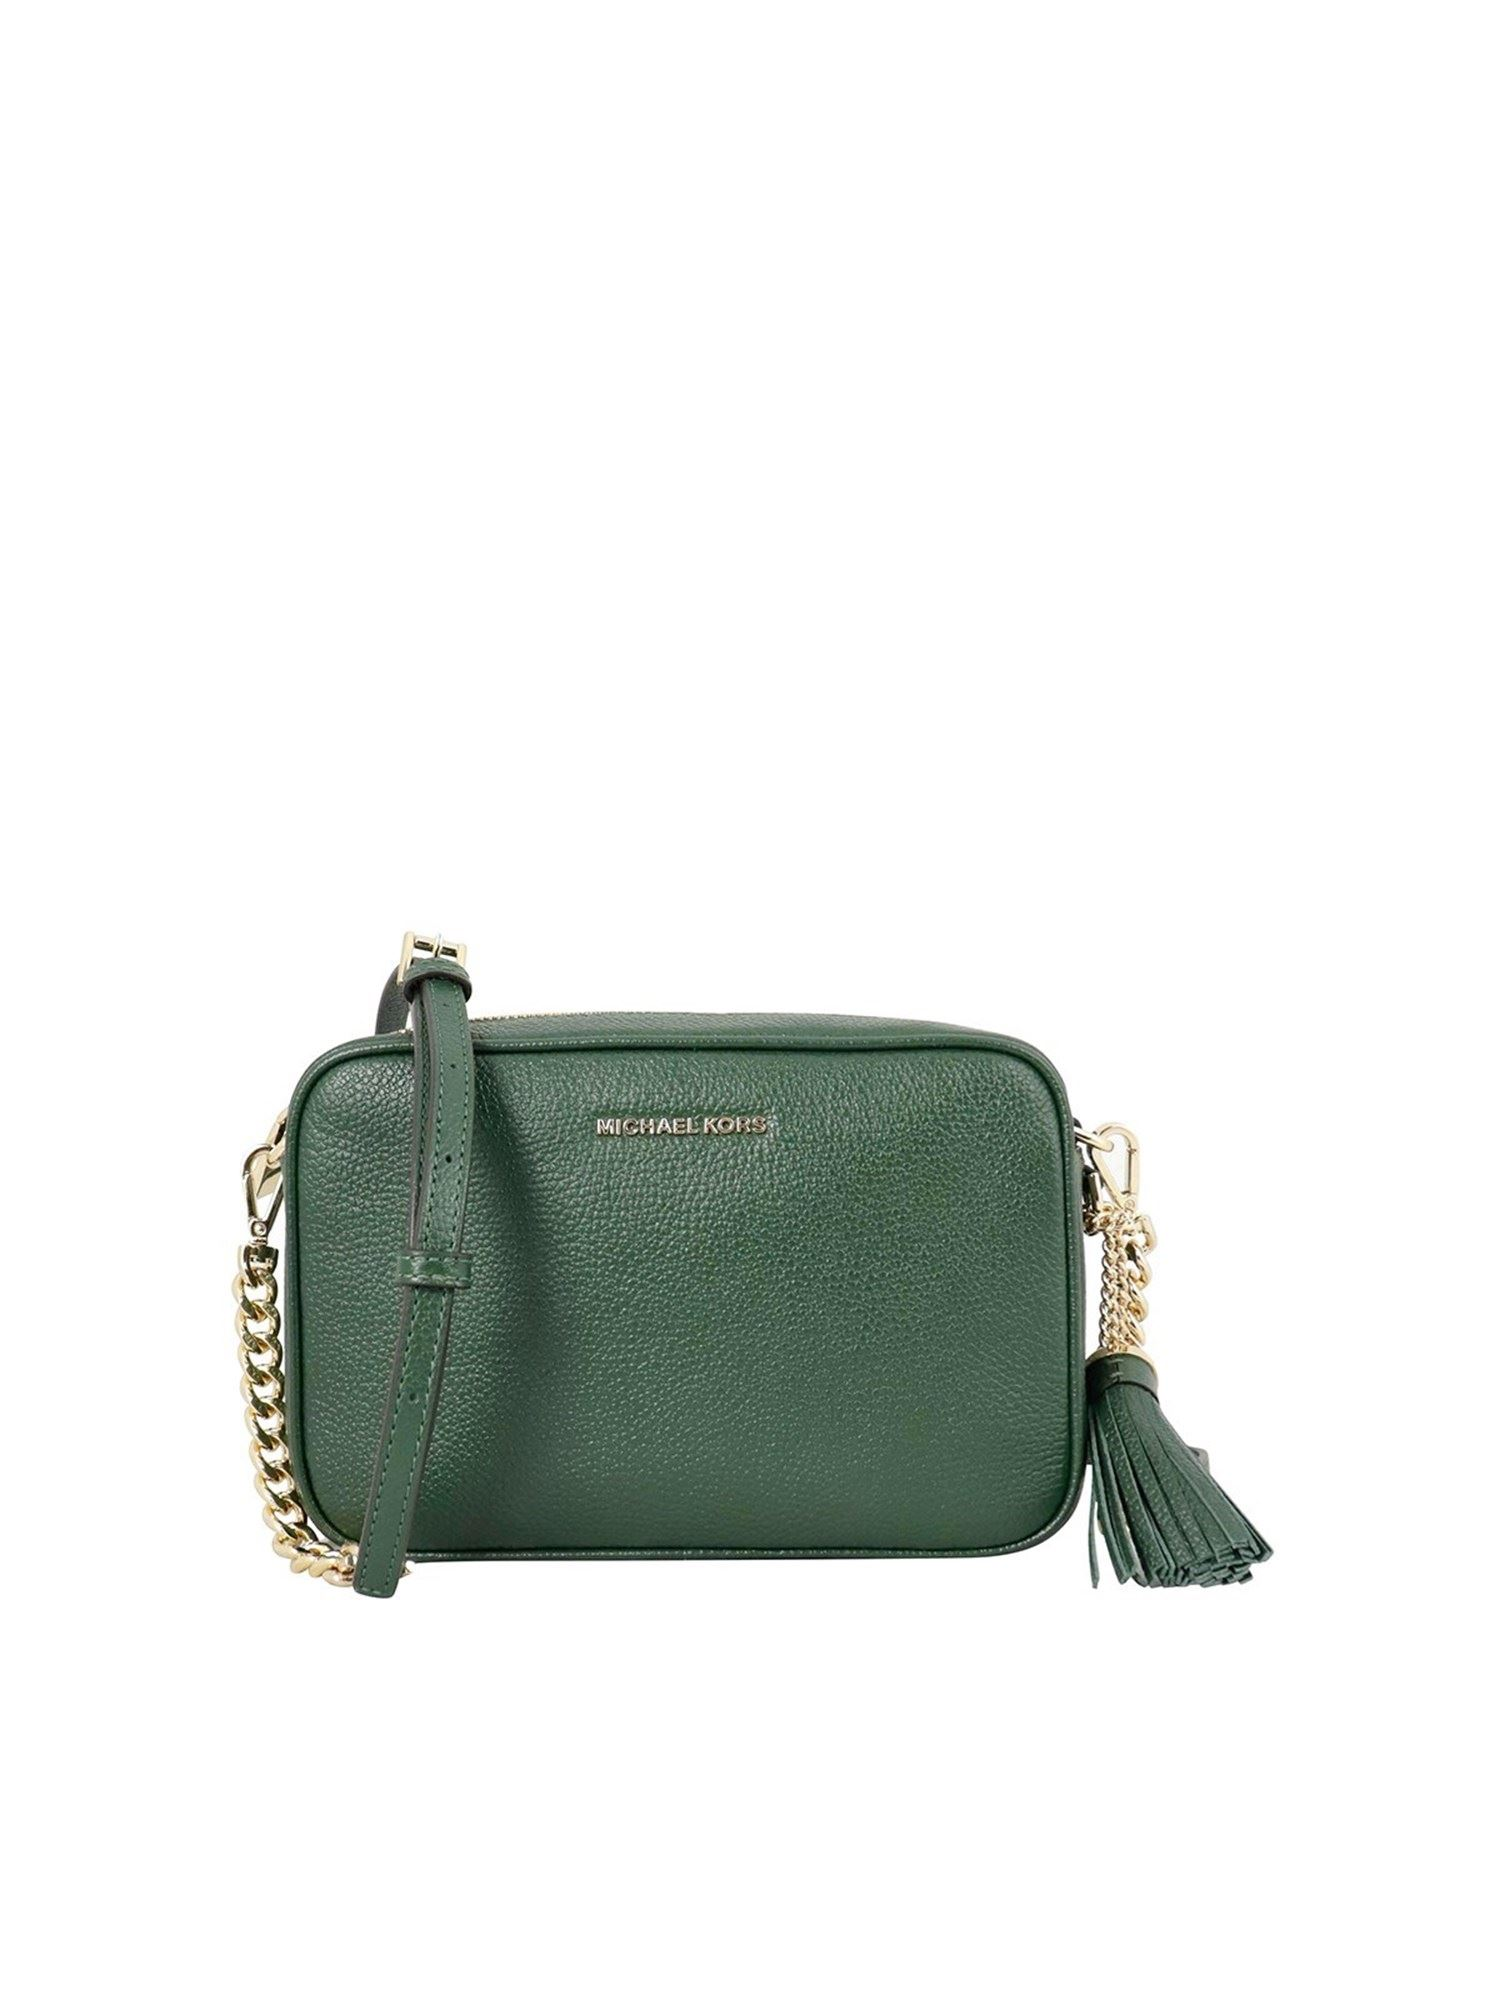 Michael Kors GINNY LEATHER CROSS BODY BAG IN GREEN